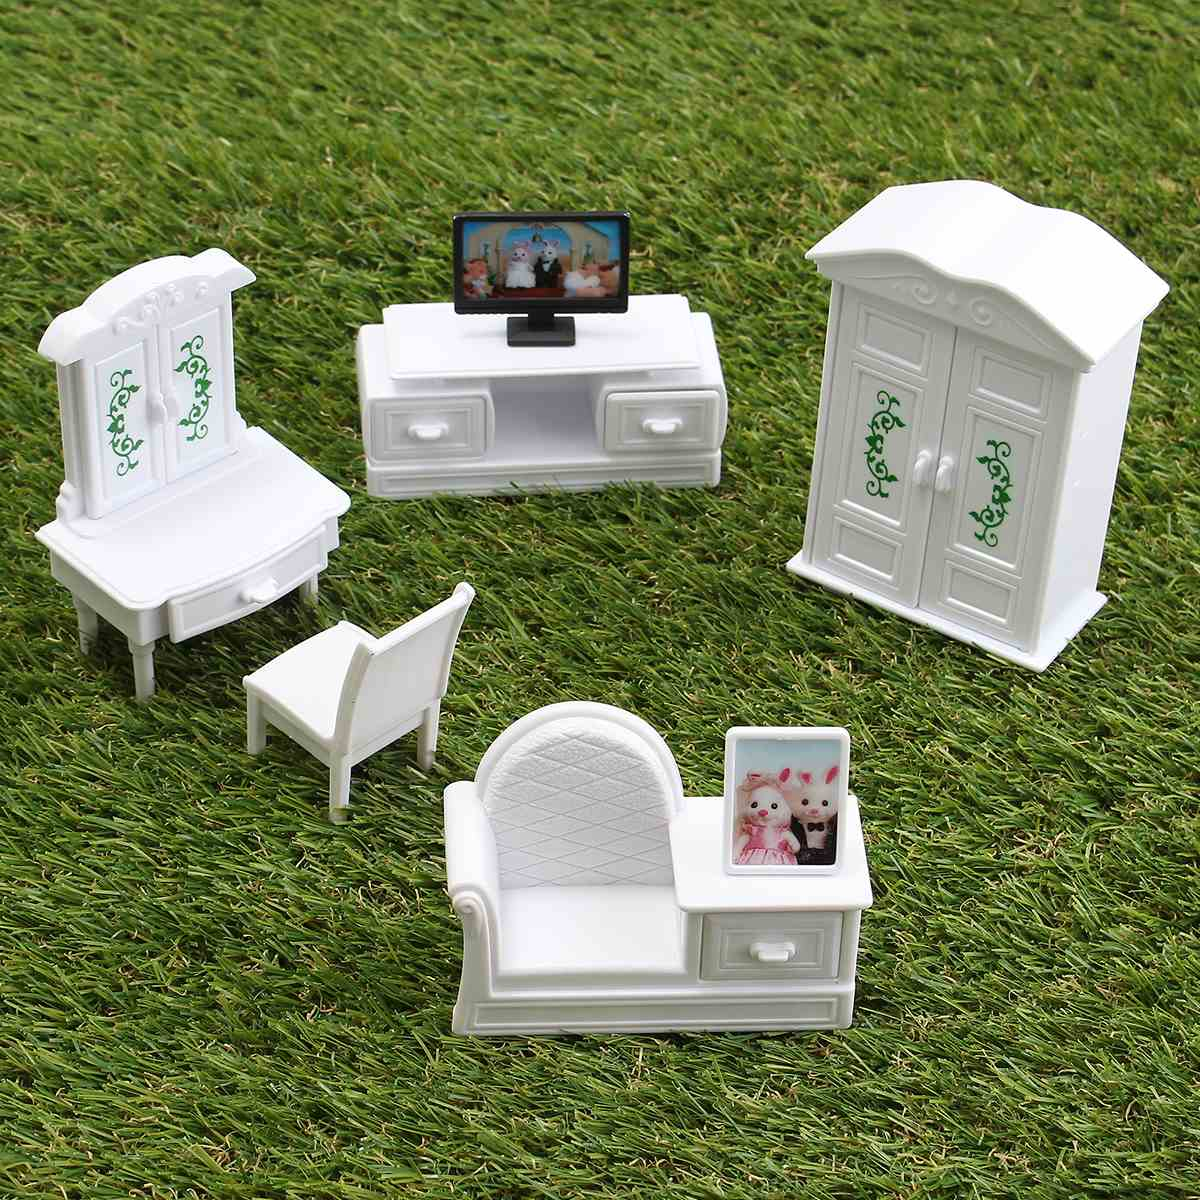 Lovely DIY White Living Room Set Plastic Doll House Miniatures Furniture Sets Kits Toy Home Decor Kids Birthday Gifts